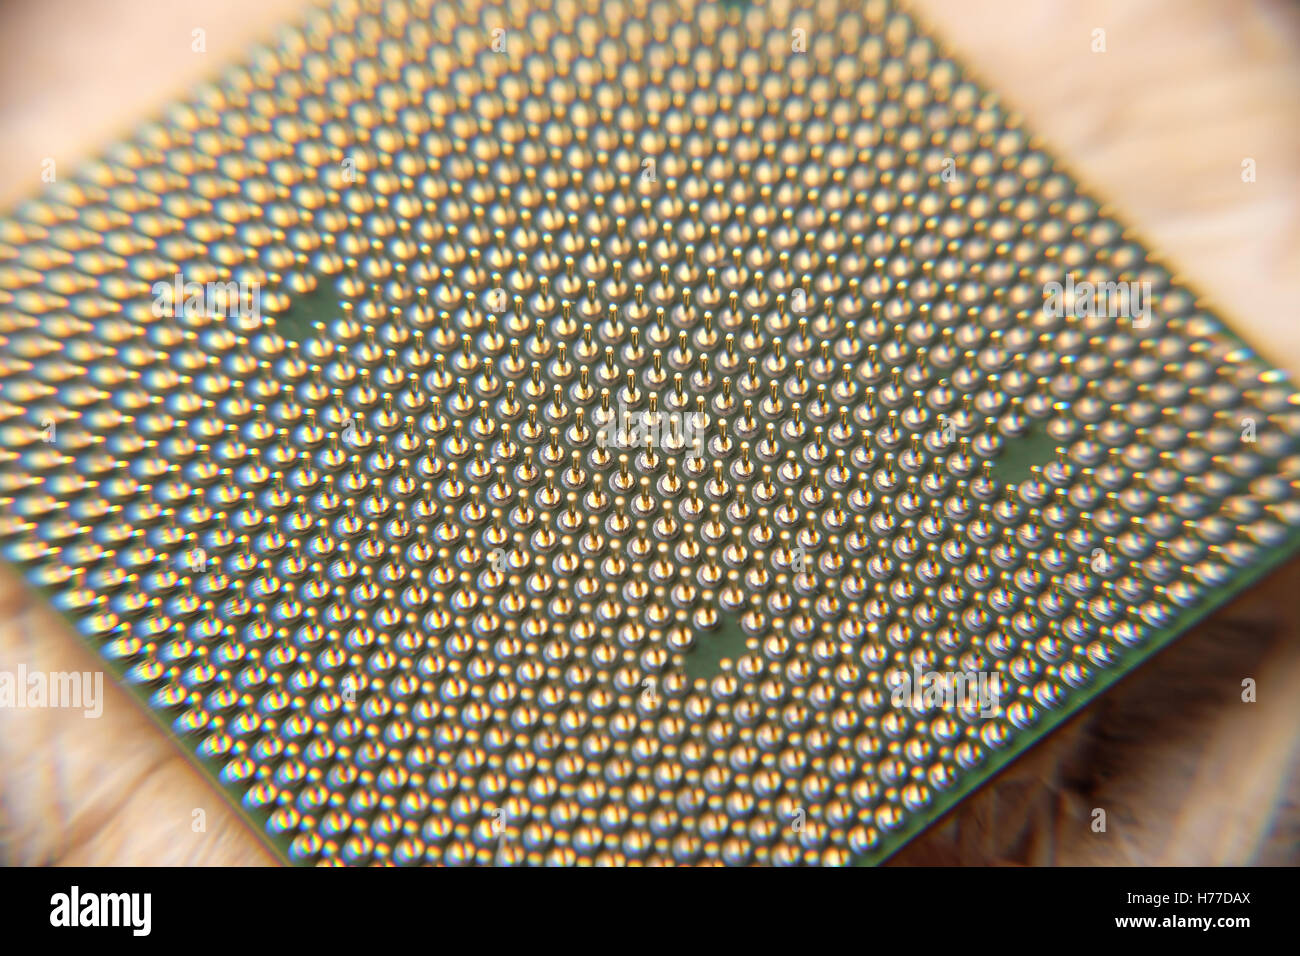 Macro shot of central processing unit CPU - Stock Image